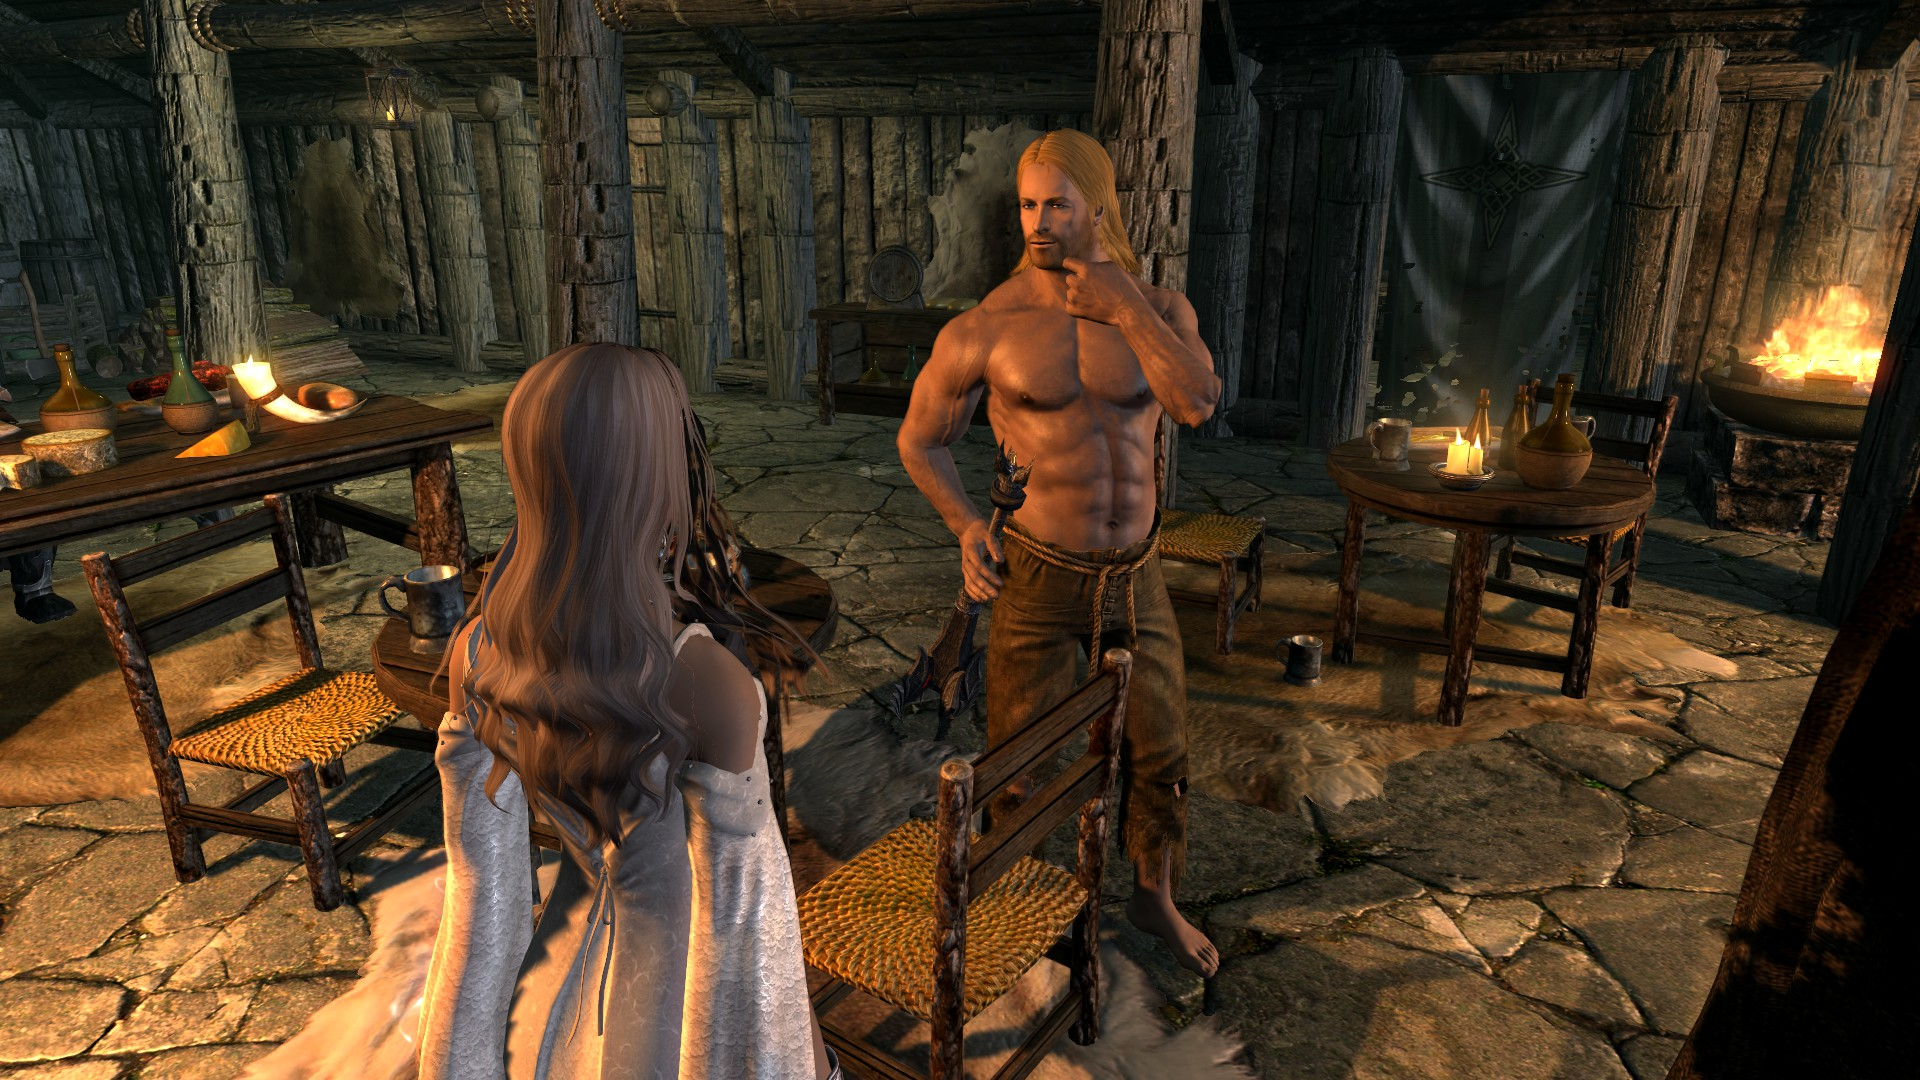 Male nude mods for oblivion pc game sex vids